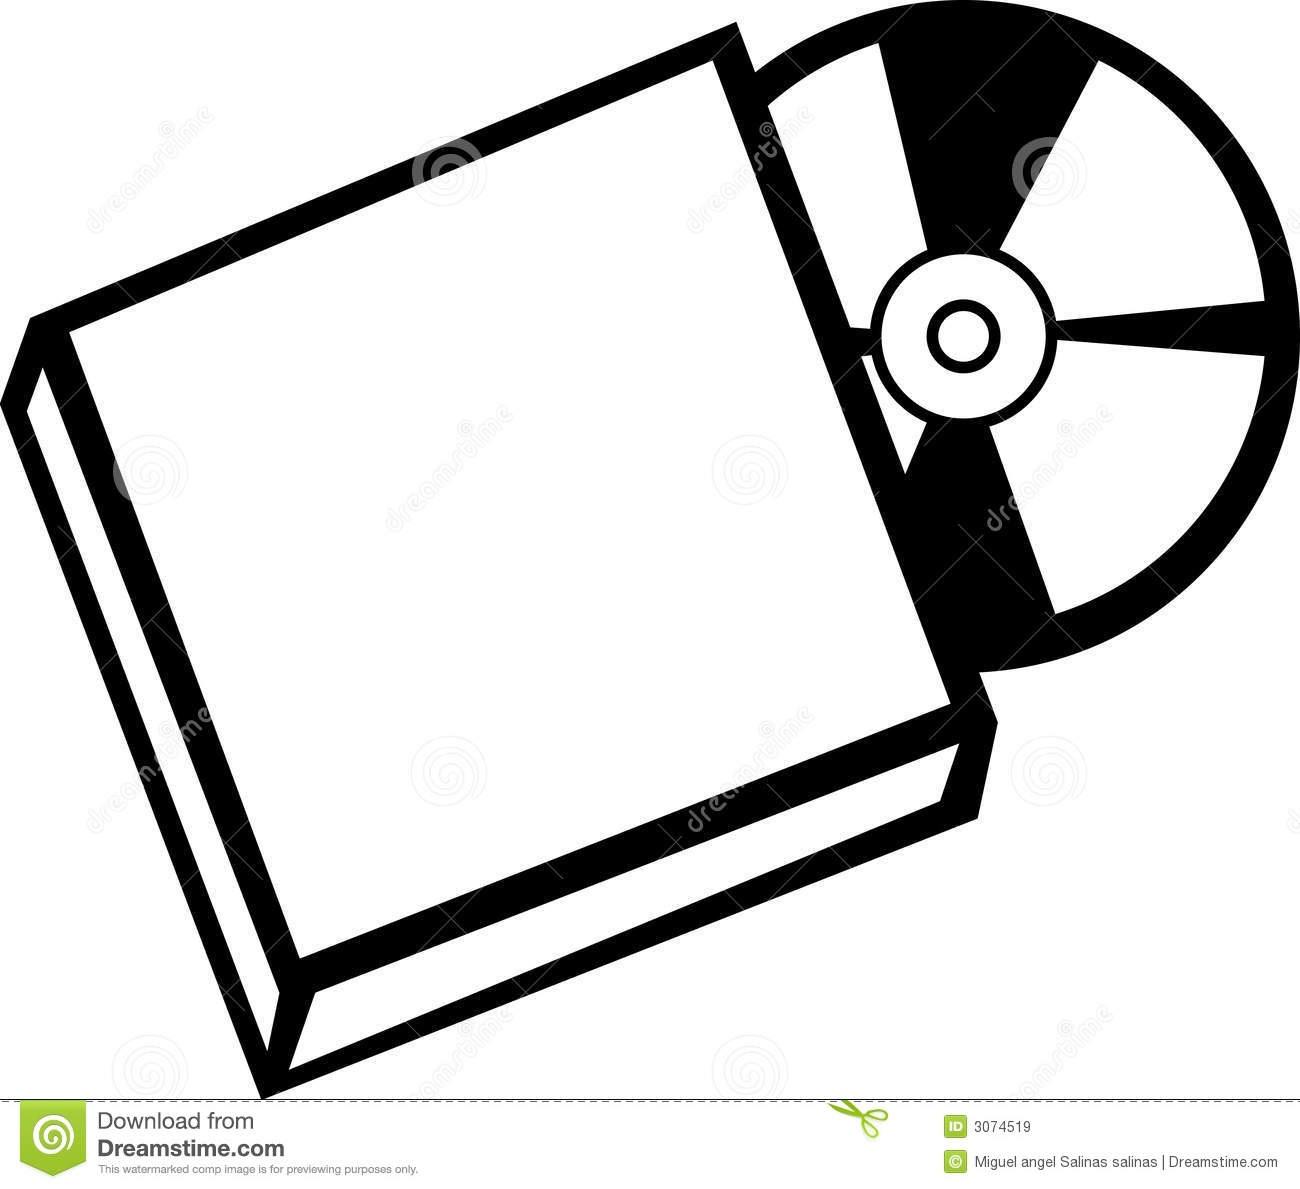 Cd case clipart.